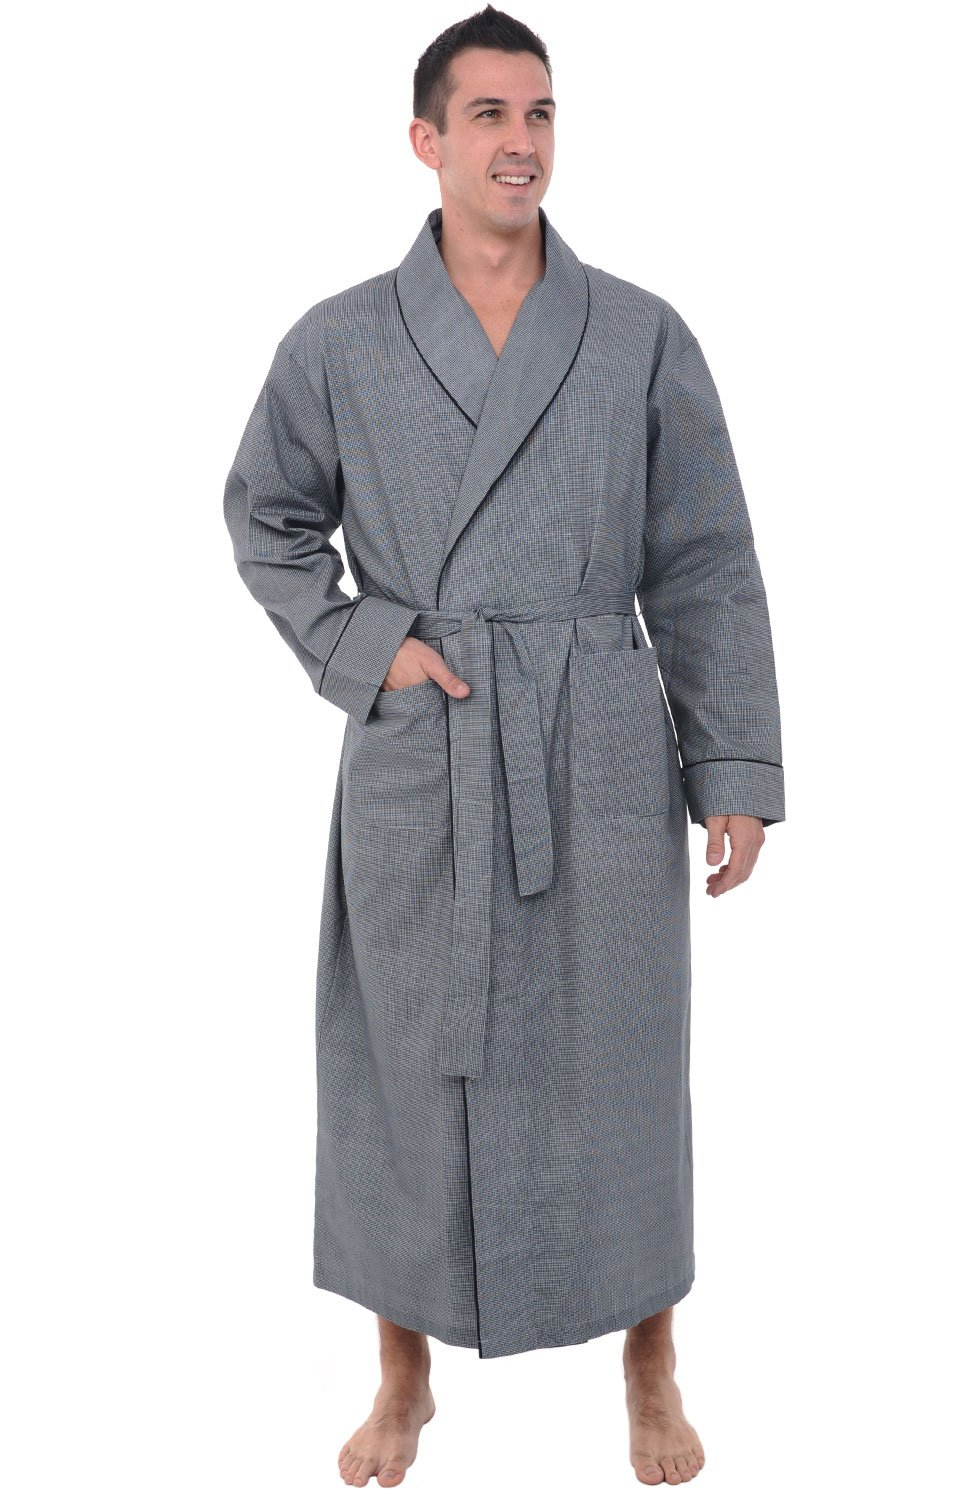 Alexander Del Rossa Mens Cotton Robe, Lightweight Woven Bathrobe, XL Black Houndstooth Check (A0715R60XL)